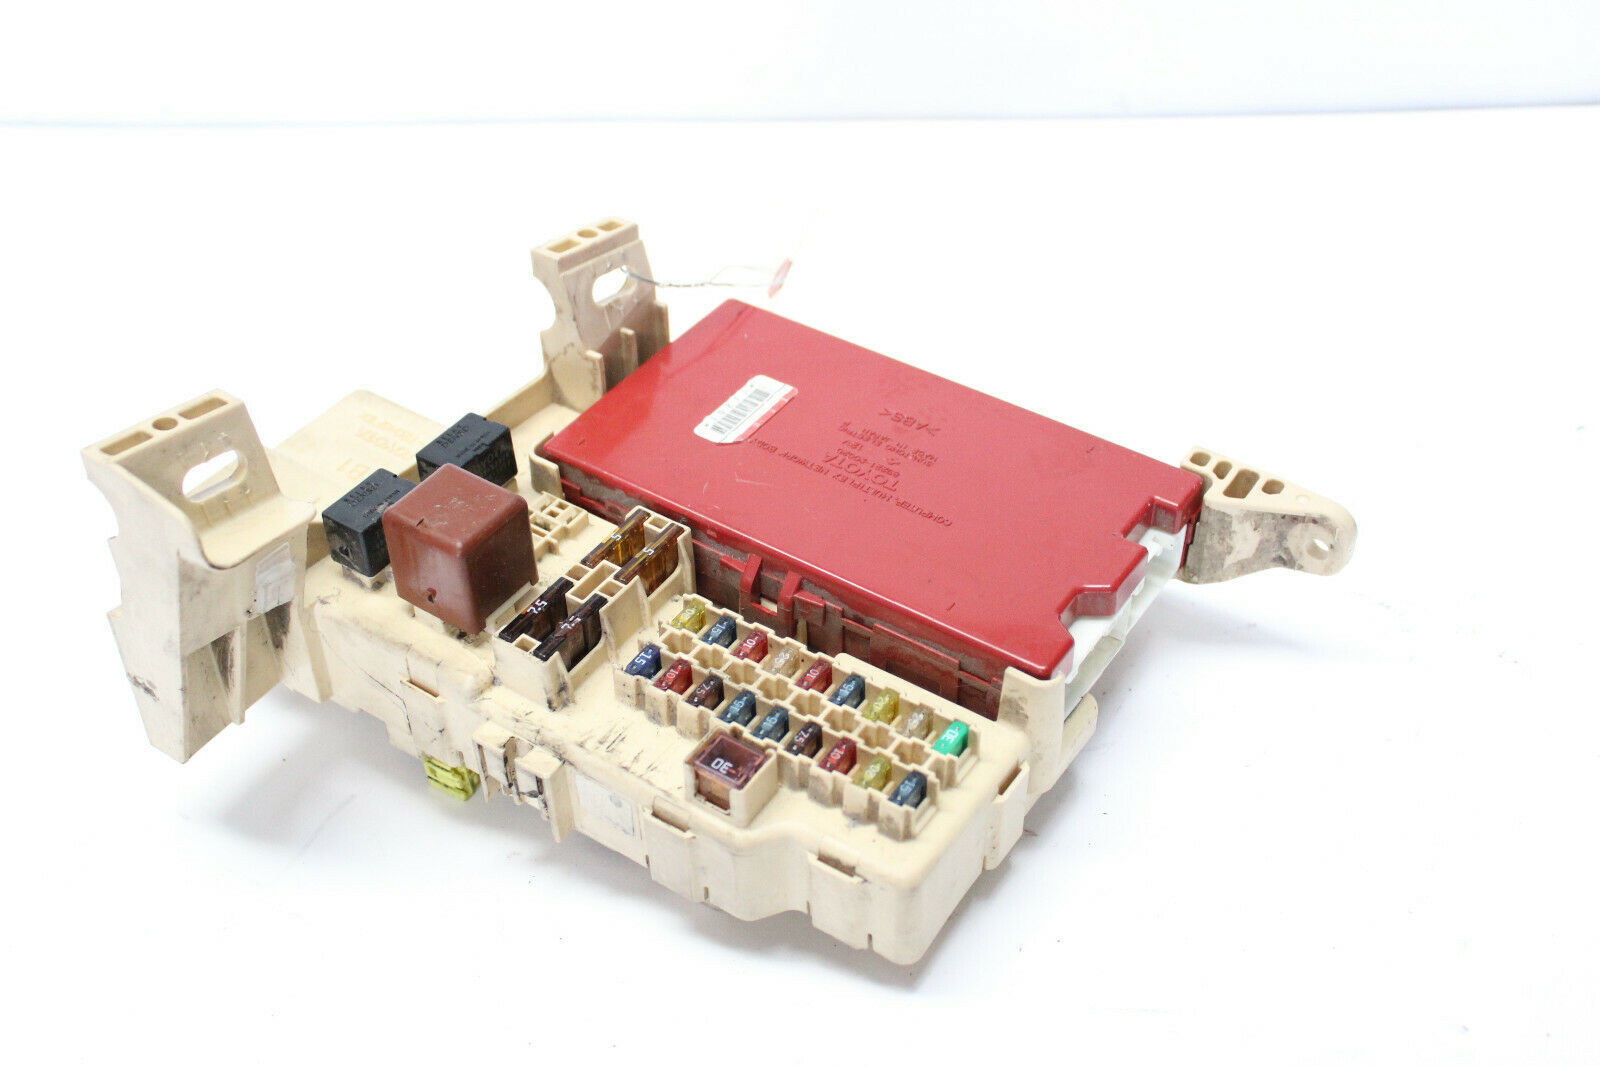 2000-2005 TOYOTA CELICA GTS INTERIOR PASSENGER SIDE FUSE RELAY BOX J6735 - $98.99